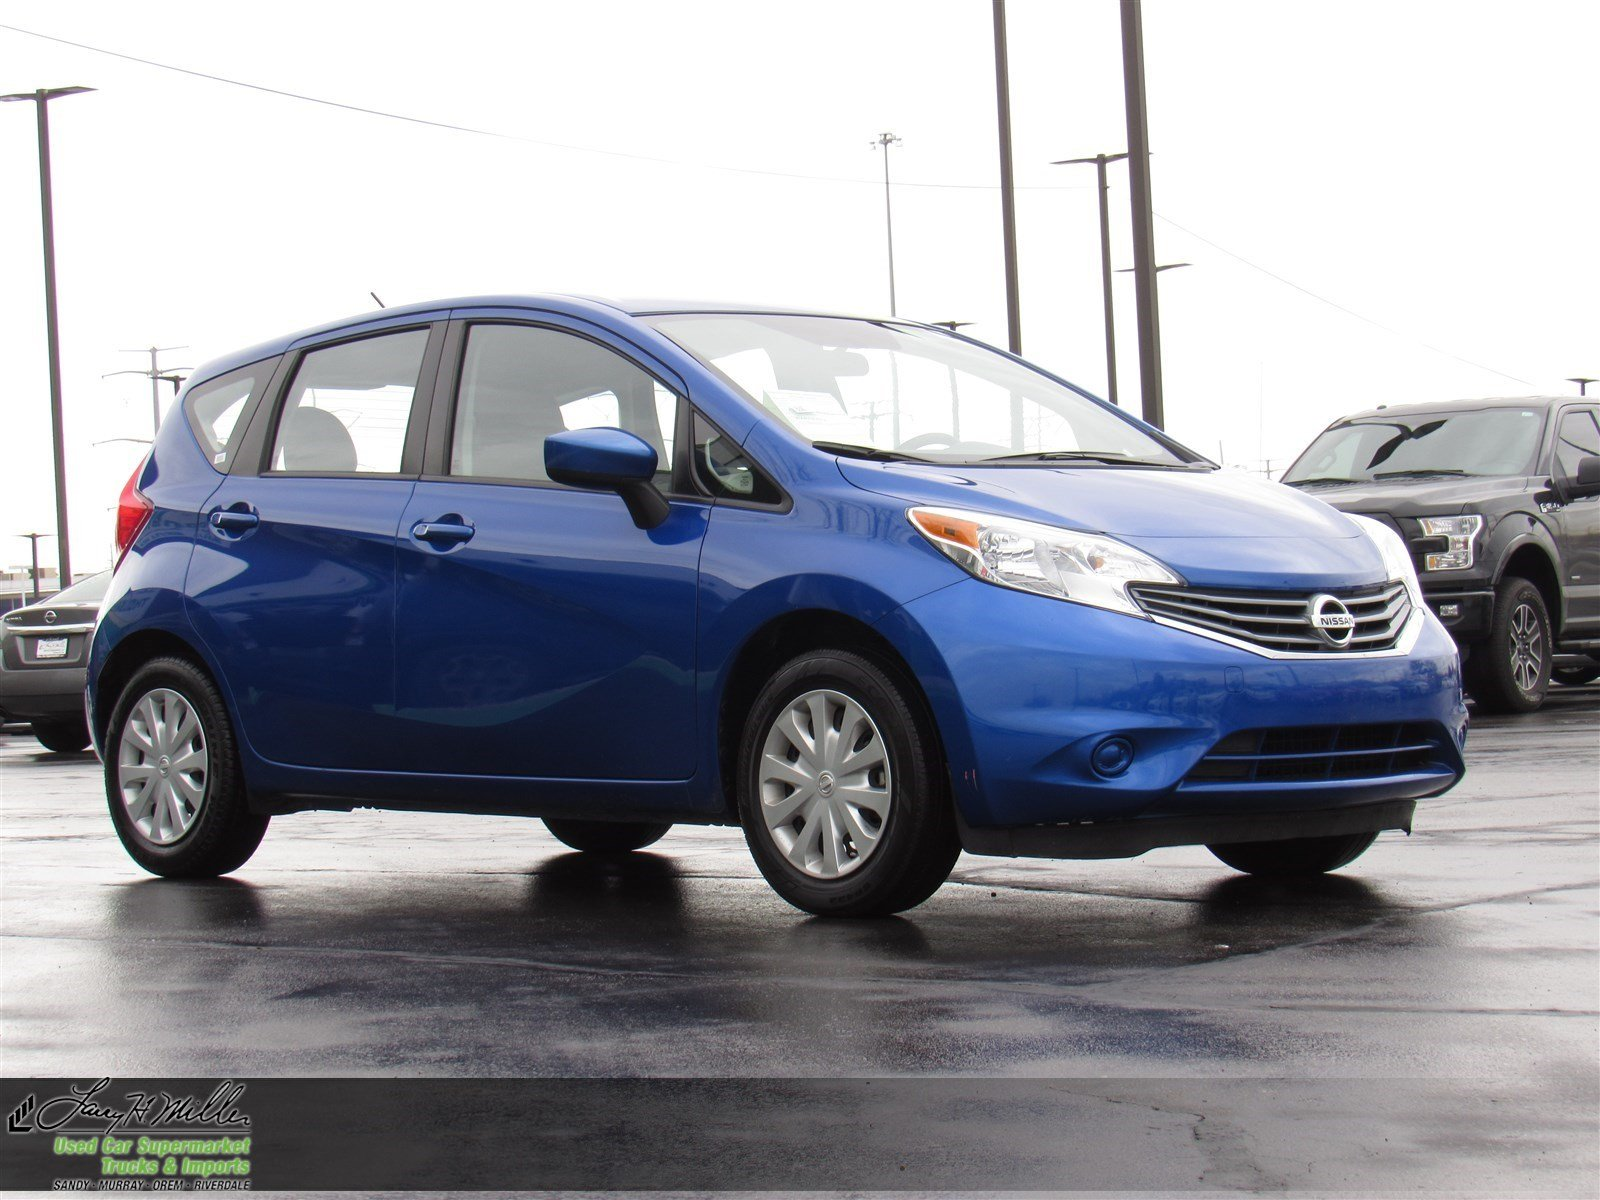 pre owned 2015 nissan versa note s plus hatchback in. Black Bedroom Furniture Sets. Home Design Ideas